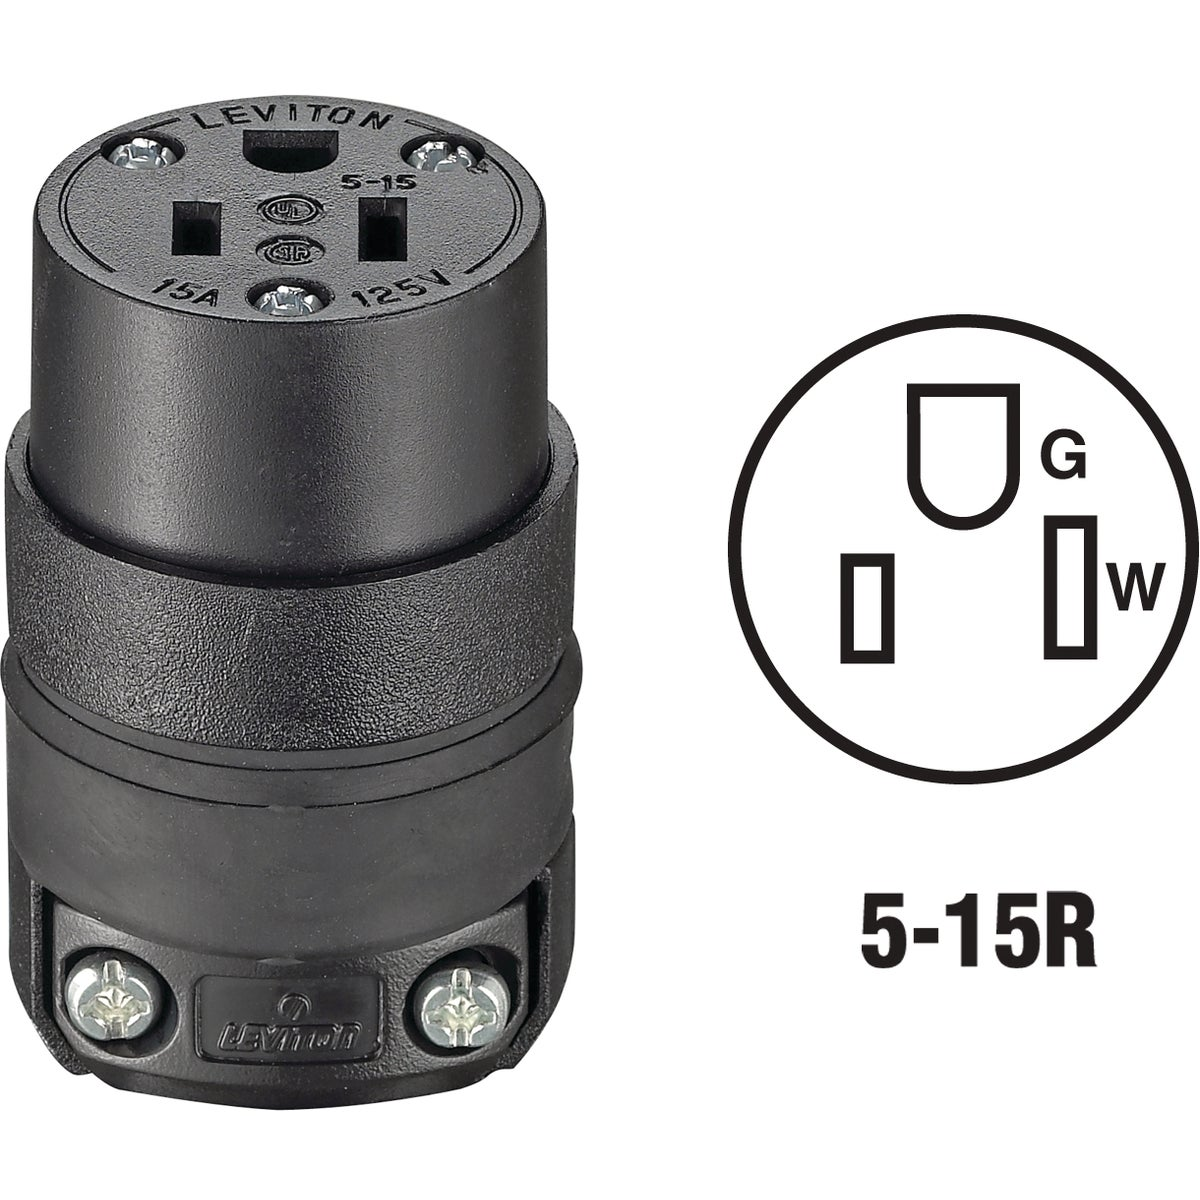 BLK CORD CONNECTOR